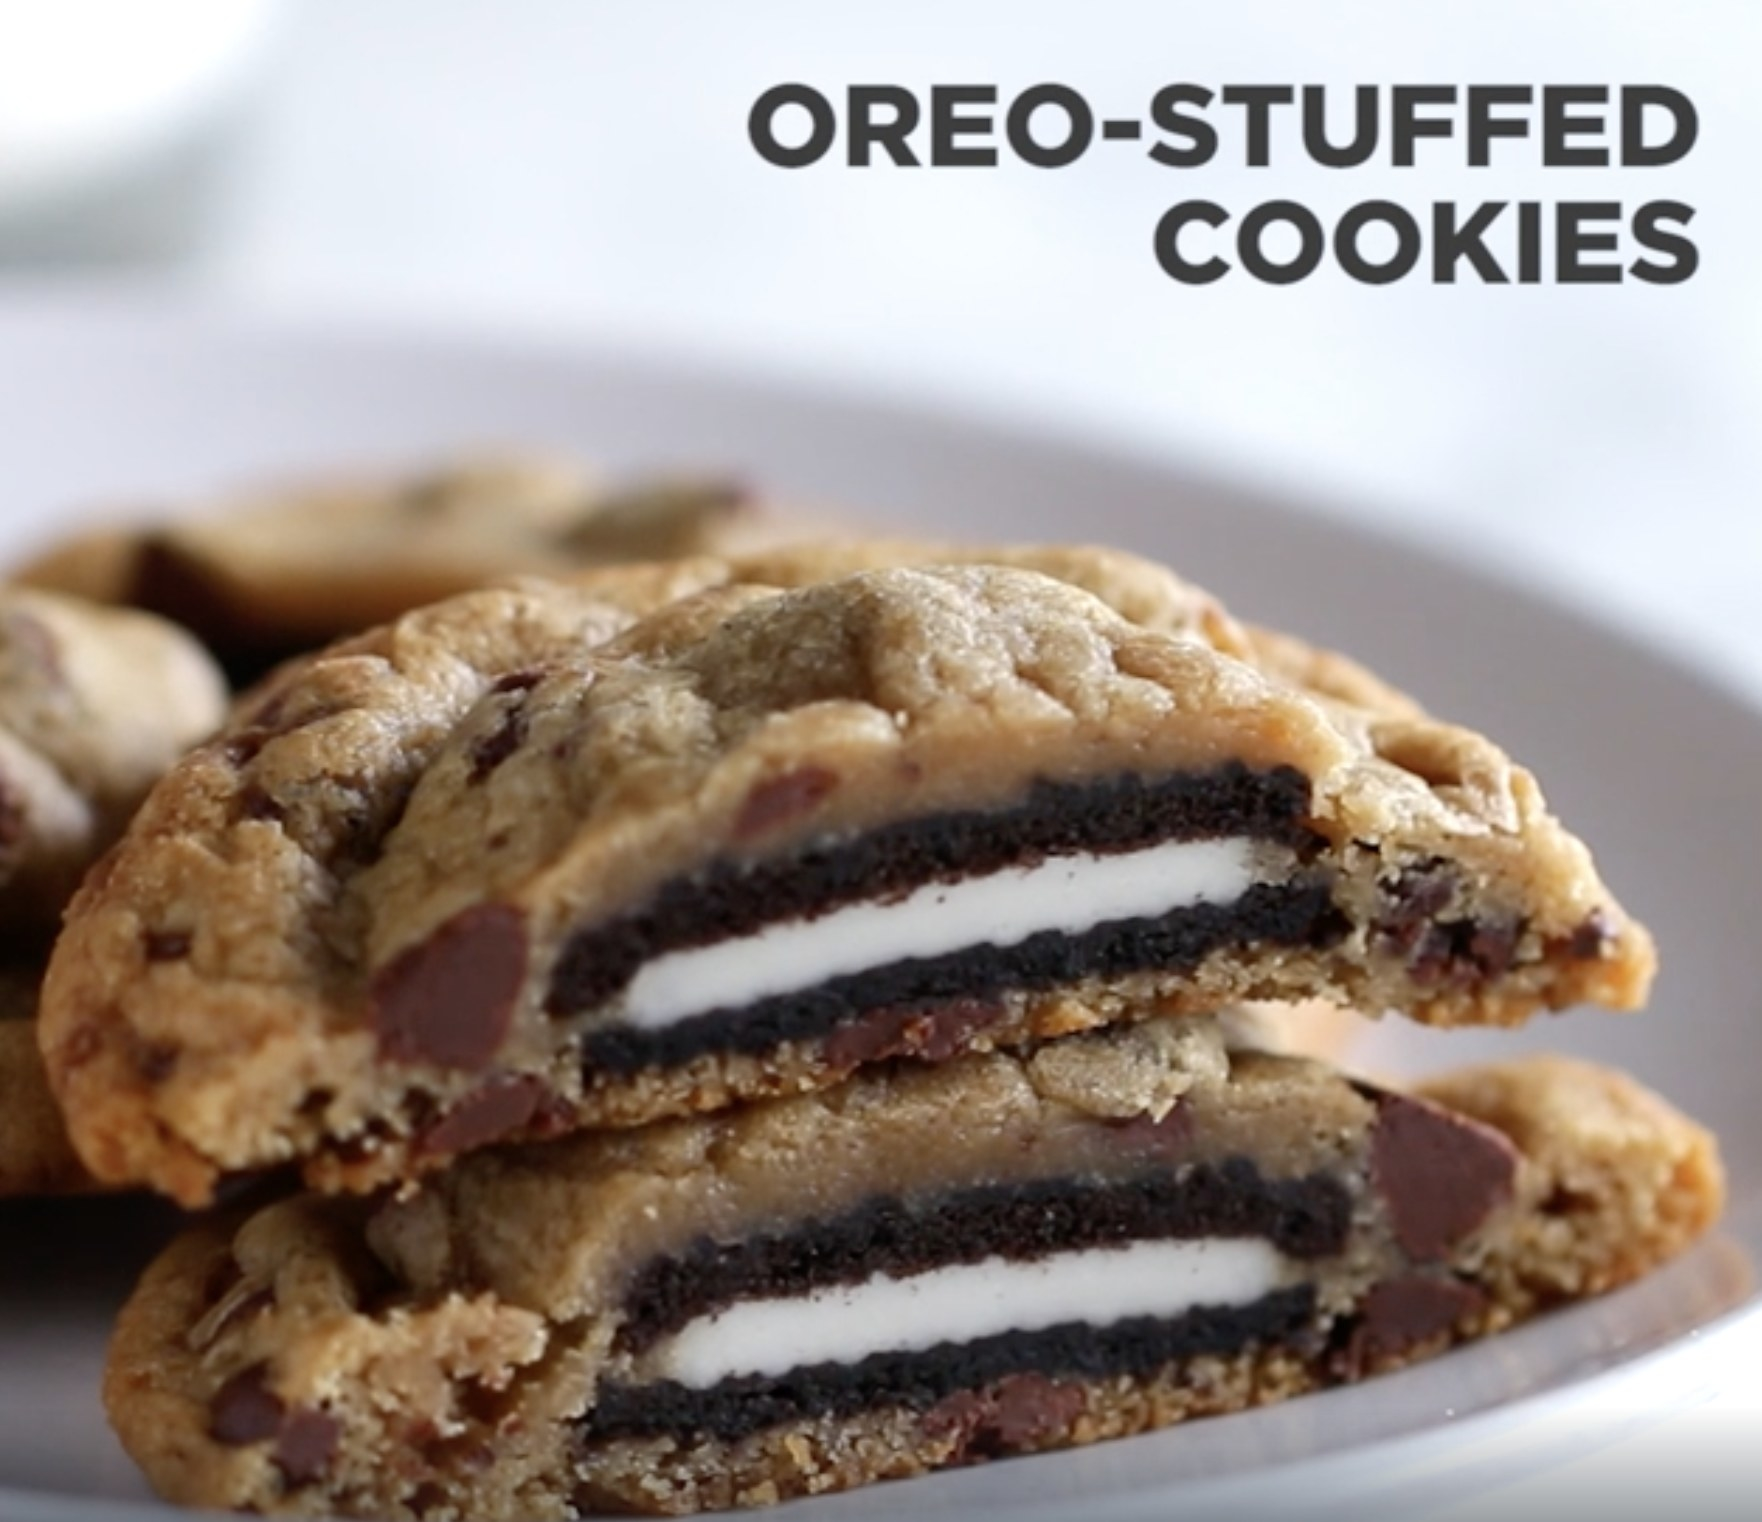 The cookies and cream stuffed cookies